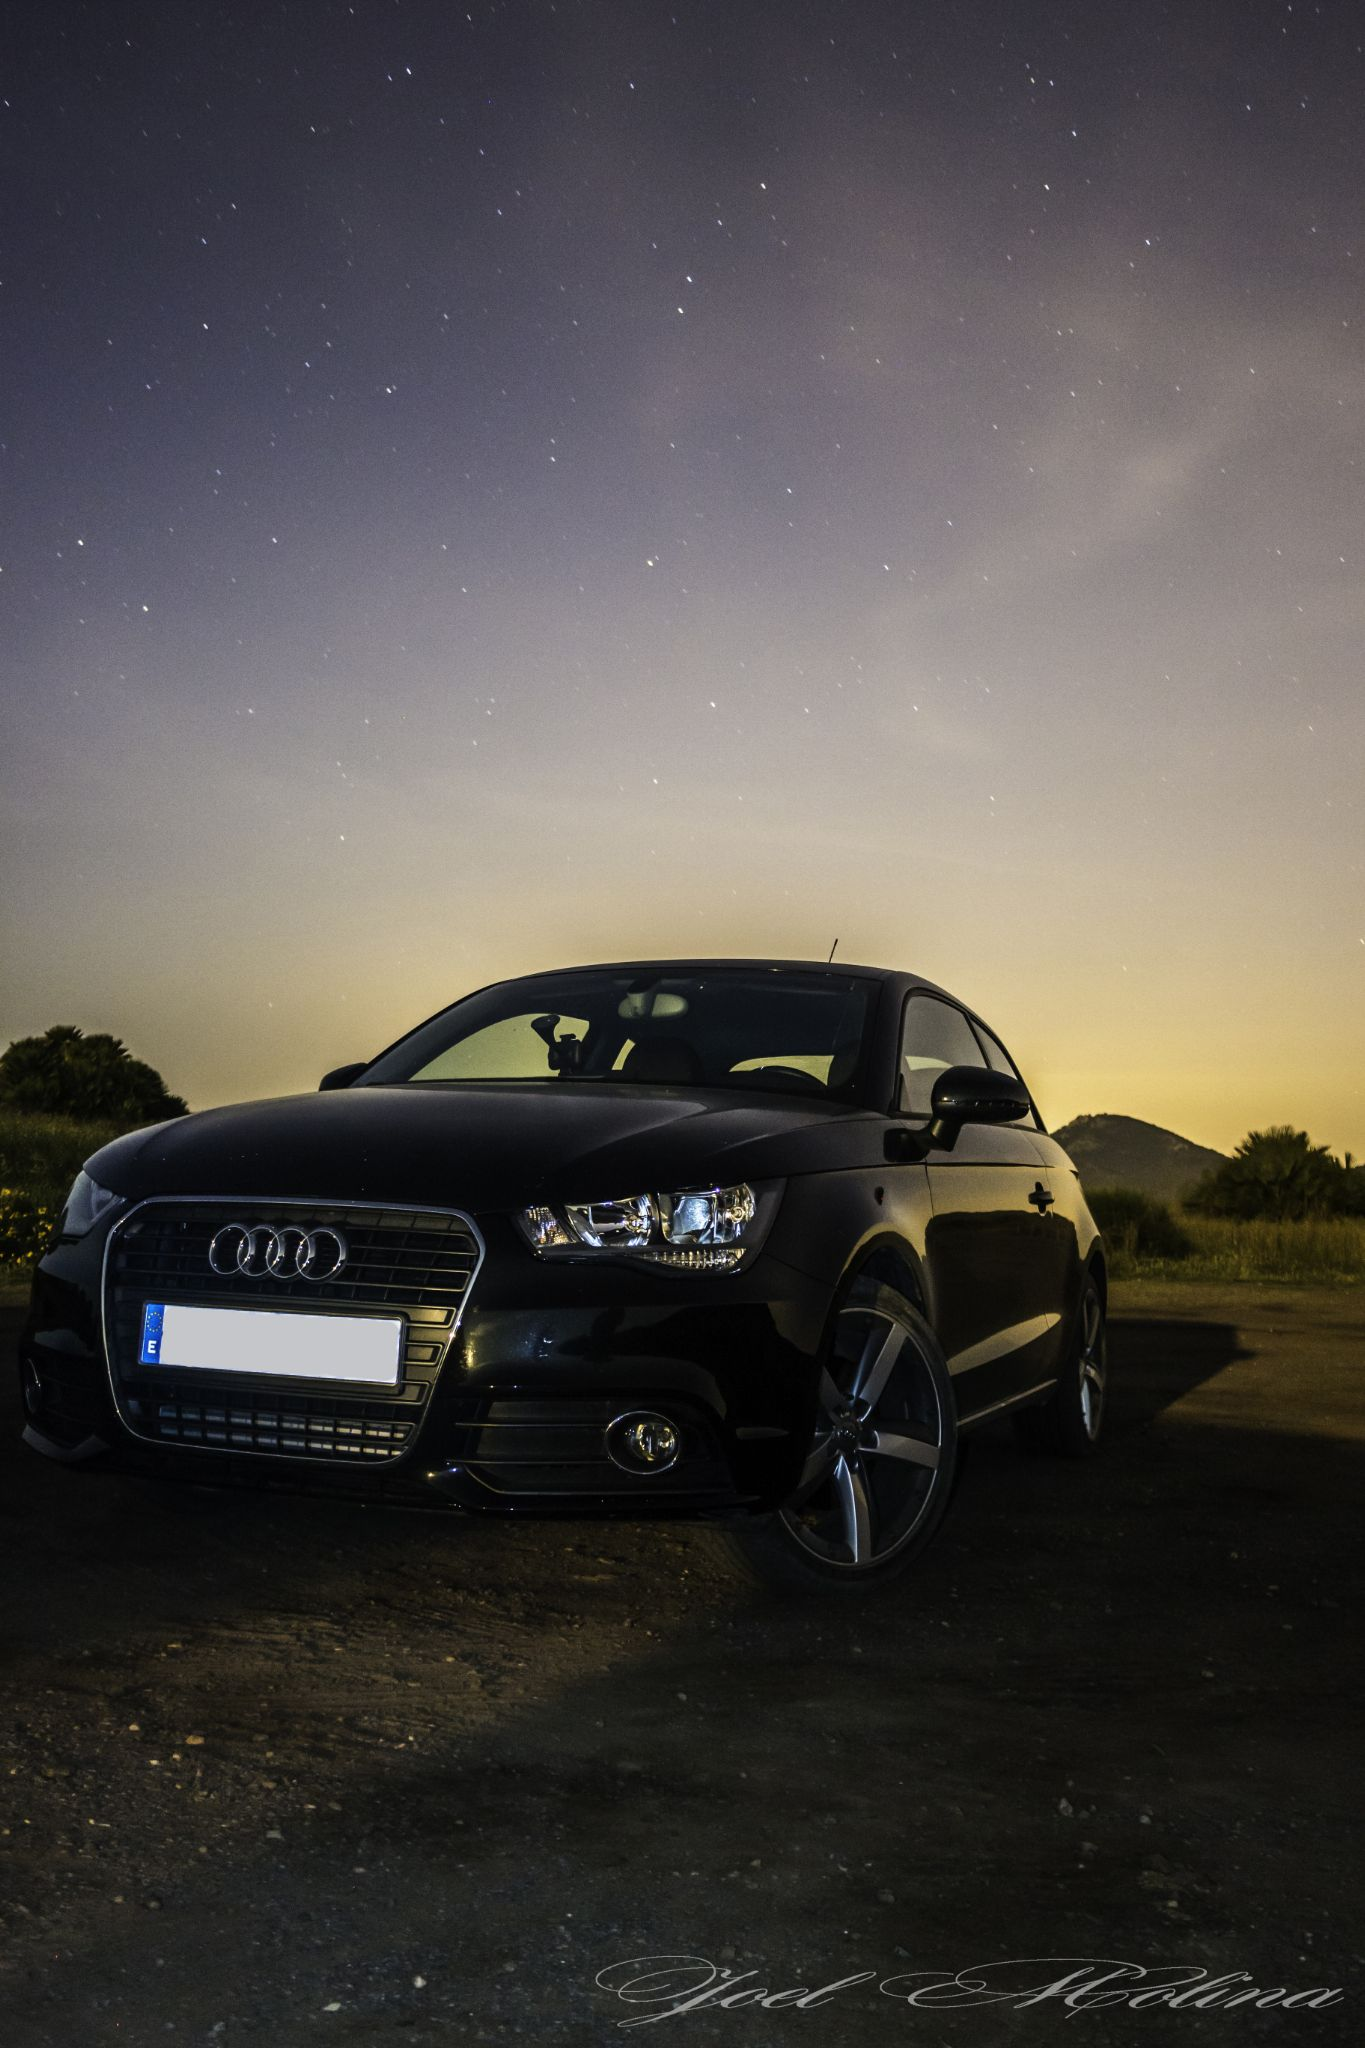 Audi A1 in the night by joelmolinaphotography